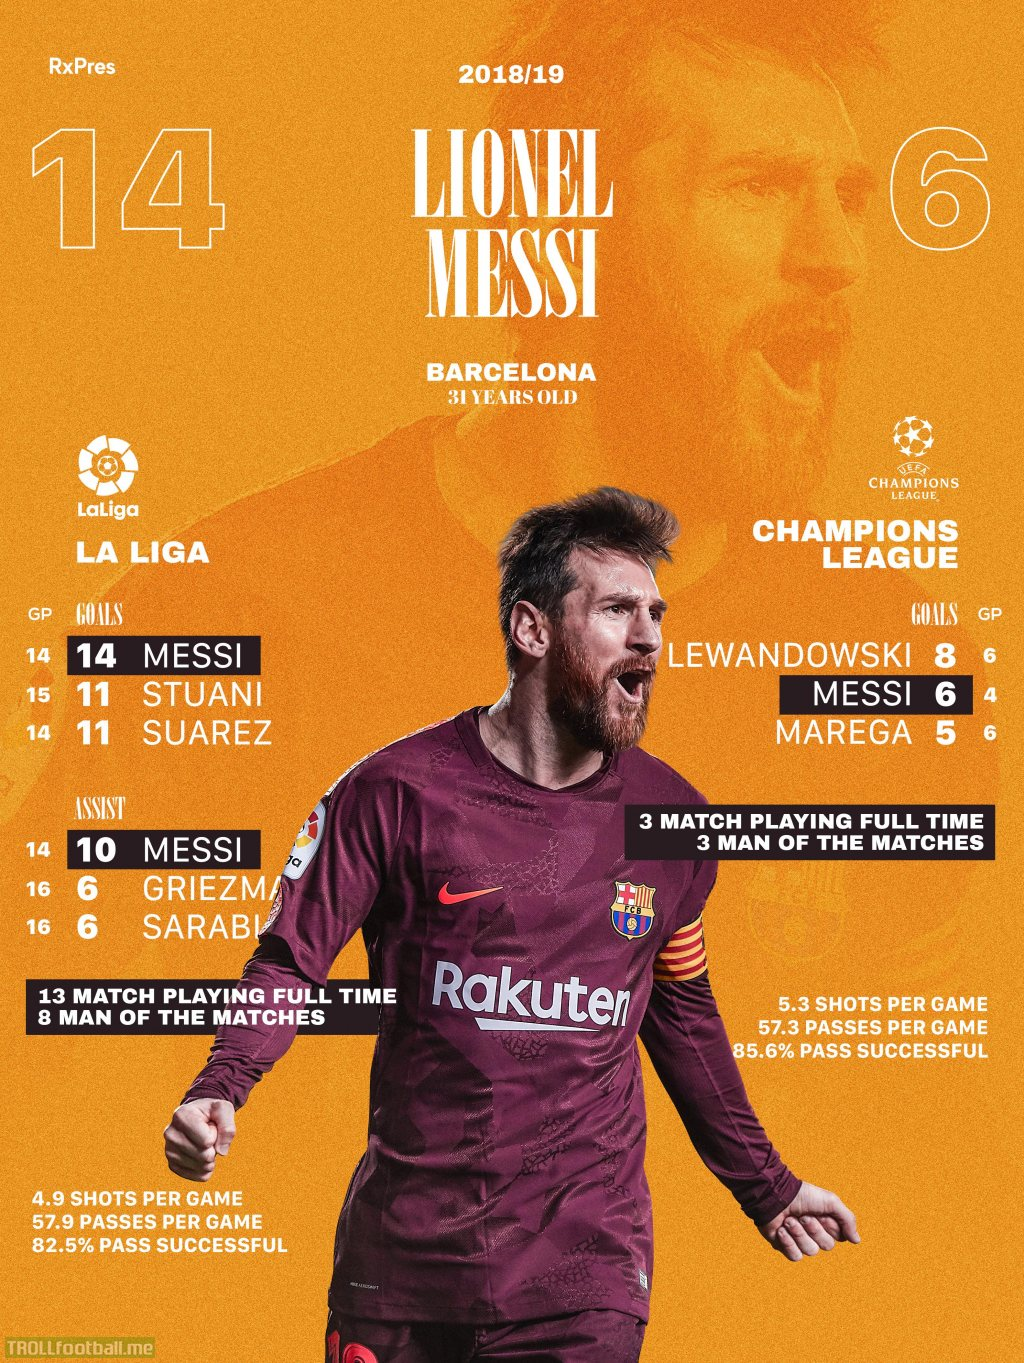 Lionel Messi in 2018/19 up until now. I made this infographic and I can't believe how this man is still topping charts and people are taking him for granted.